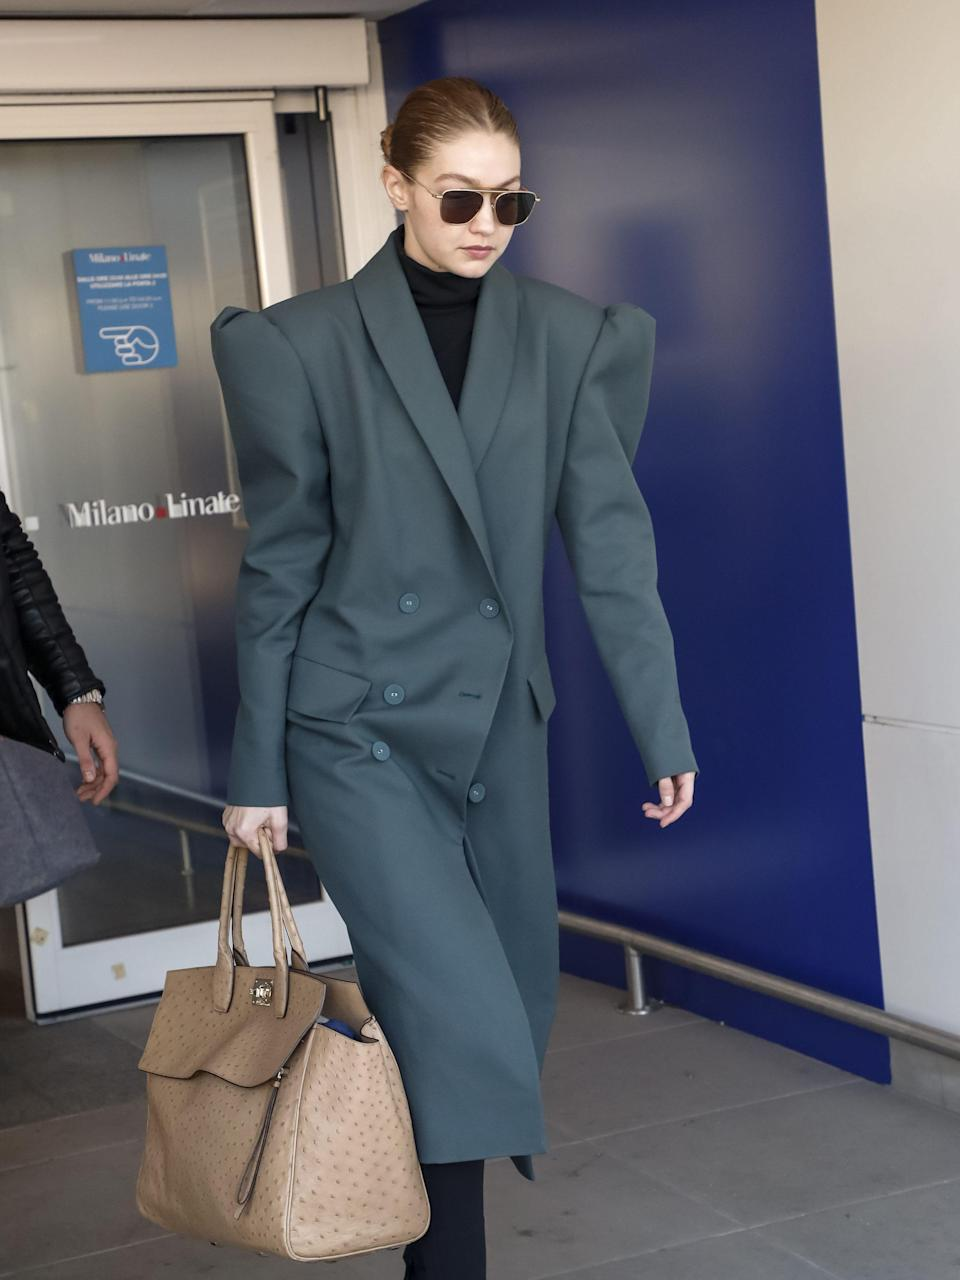 """<p>Gigi Hadid has quickly become America's Sweetheart of the modeling world—with her California Girl good looks and sunny disposition—but her style says <em>bonafide bombshell</em>. Hadid knows how to dress her curves—from midriff-baring two pieces, to curve-hugging dresses and plunging necklines. The top model even makes a white t-shirt and jeans look totally sexy. Hey, if you got it, flaunt it. Click through to see her best looks, plus shop model off duty must-haves on <a href=""""https://shop.harpersbazaar.com/Model-Off-Duty/index.html"""" rel=""""nofollow noopener"""" target=""""_blank"""" data-ylk=""""slk:ShopBAZAAR"""" class=""""link rapid-noclick-resp"""">ShopBAZAAR</a>.</p>"""